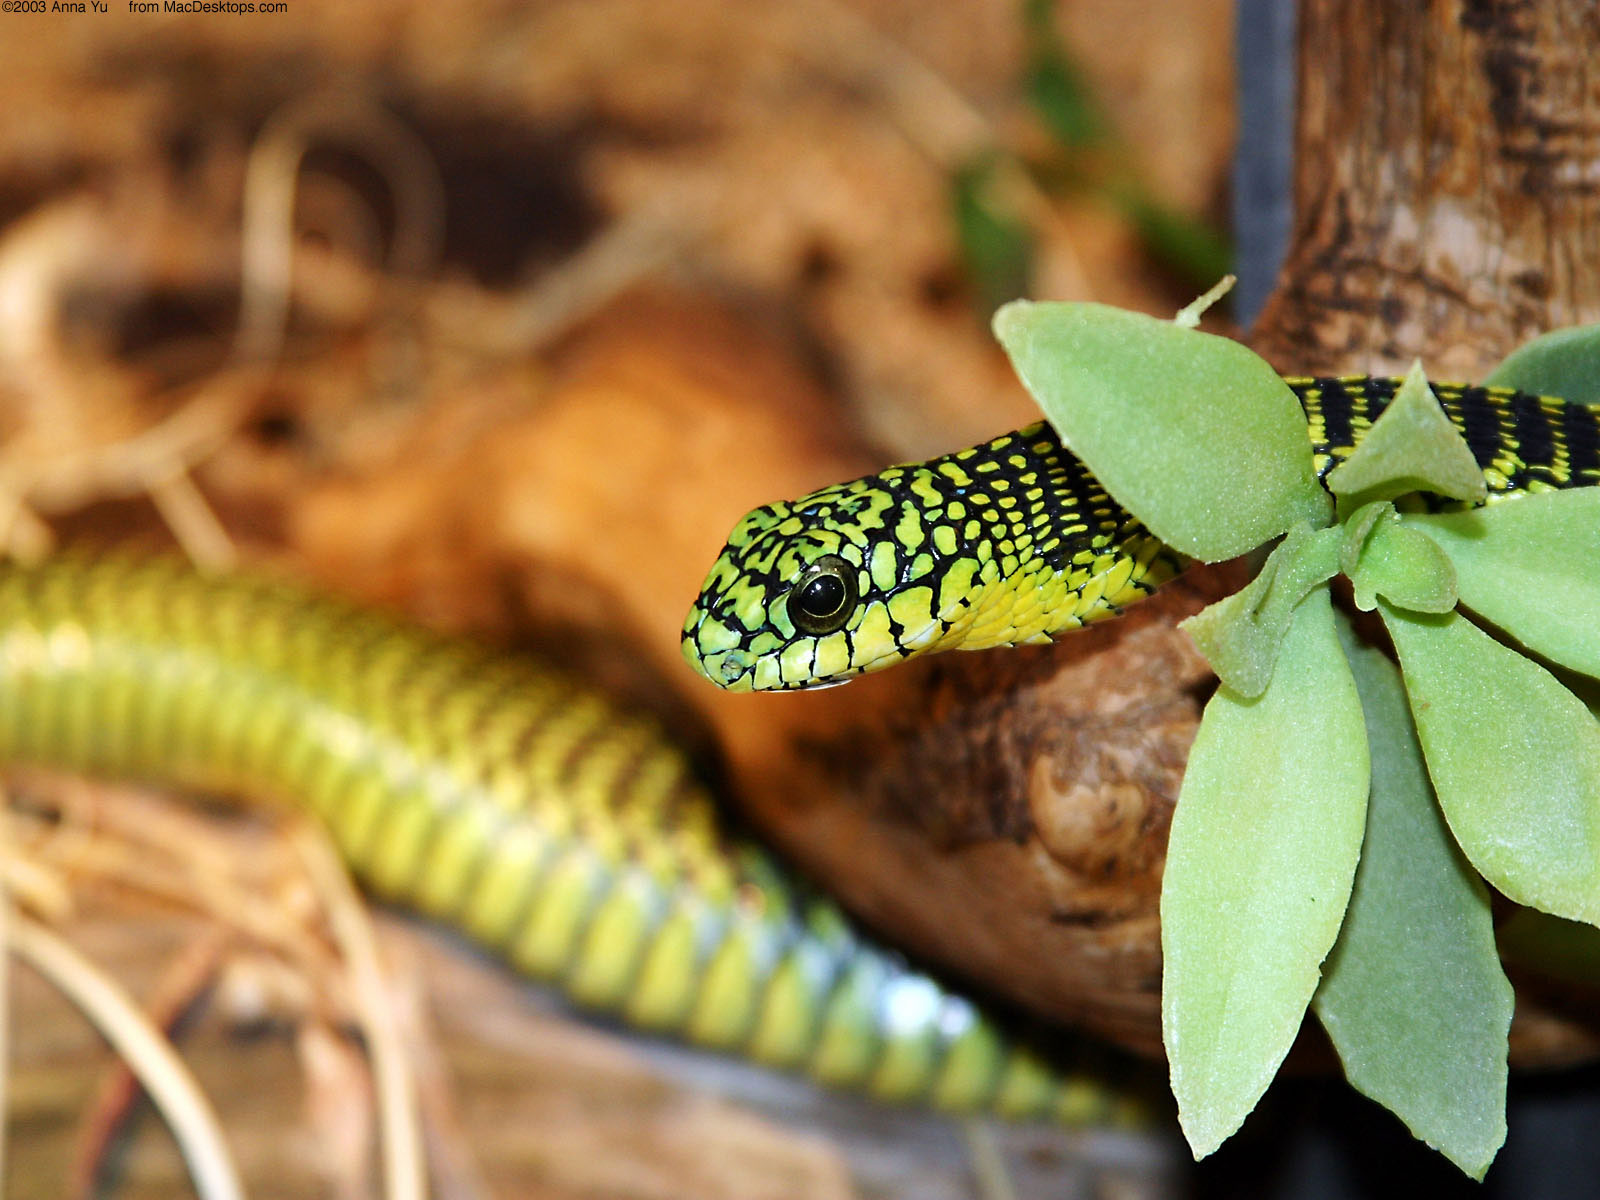 A Green Snake 2 582.72 Kb